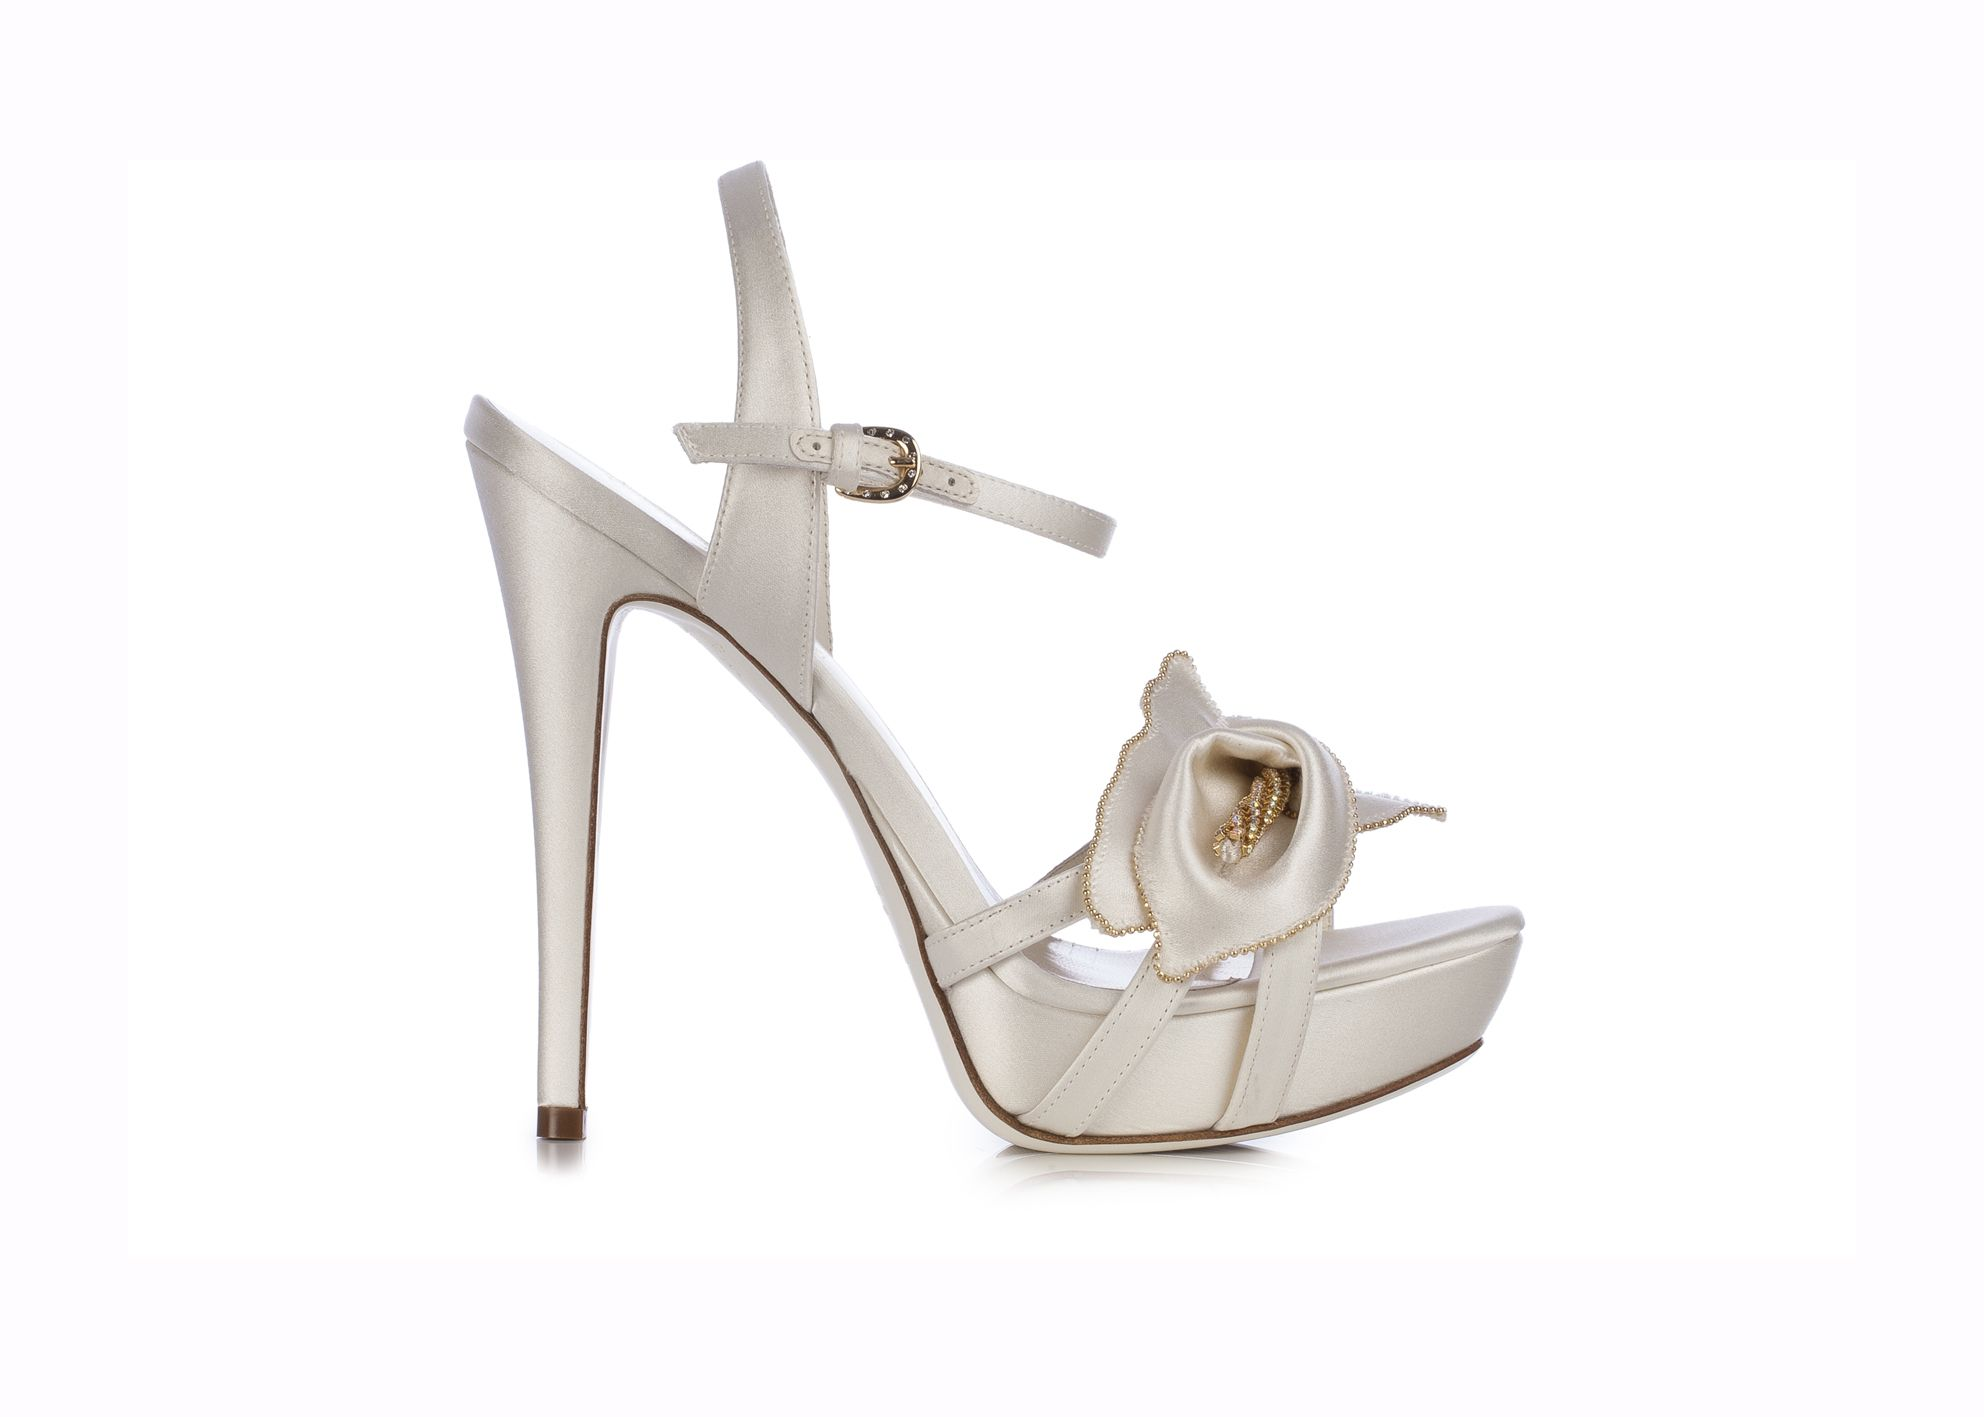 LORIBLU. Ivory satin sandal with stiletto heel and platform. The calla lily flower at the toe makes it a refined and romantic slyle for ceremony.  Available at Loriblu boutiques and http://www.loriblu.com/en/sposa/sposa-calzature/sandalo-gioiello-4ex02155xc2c01469po.html